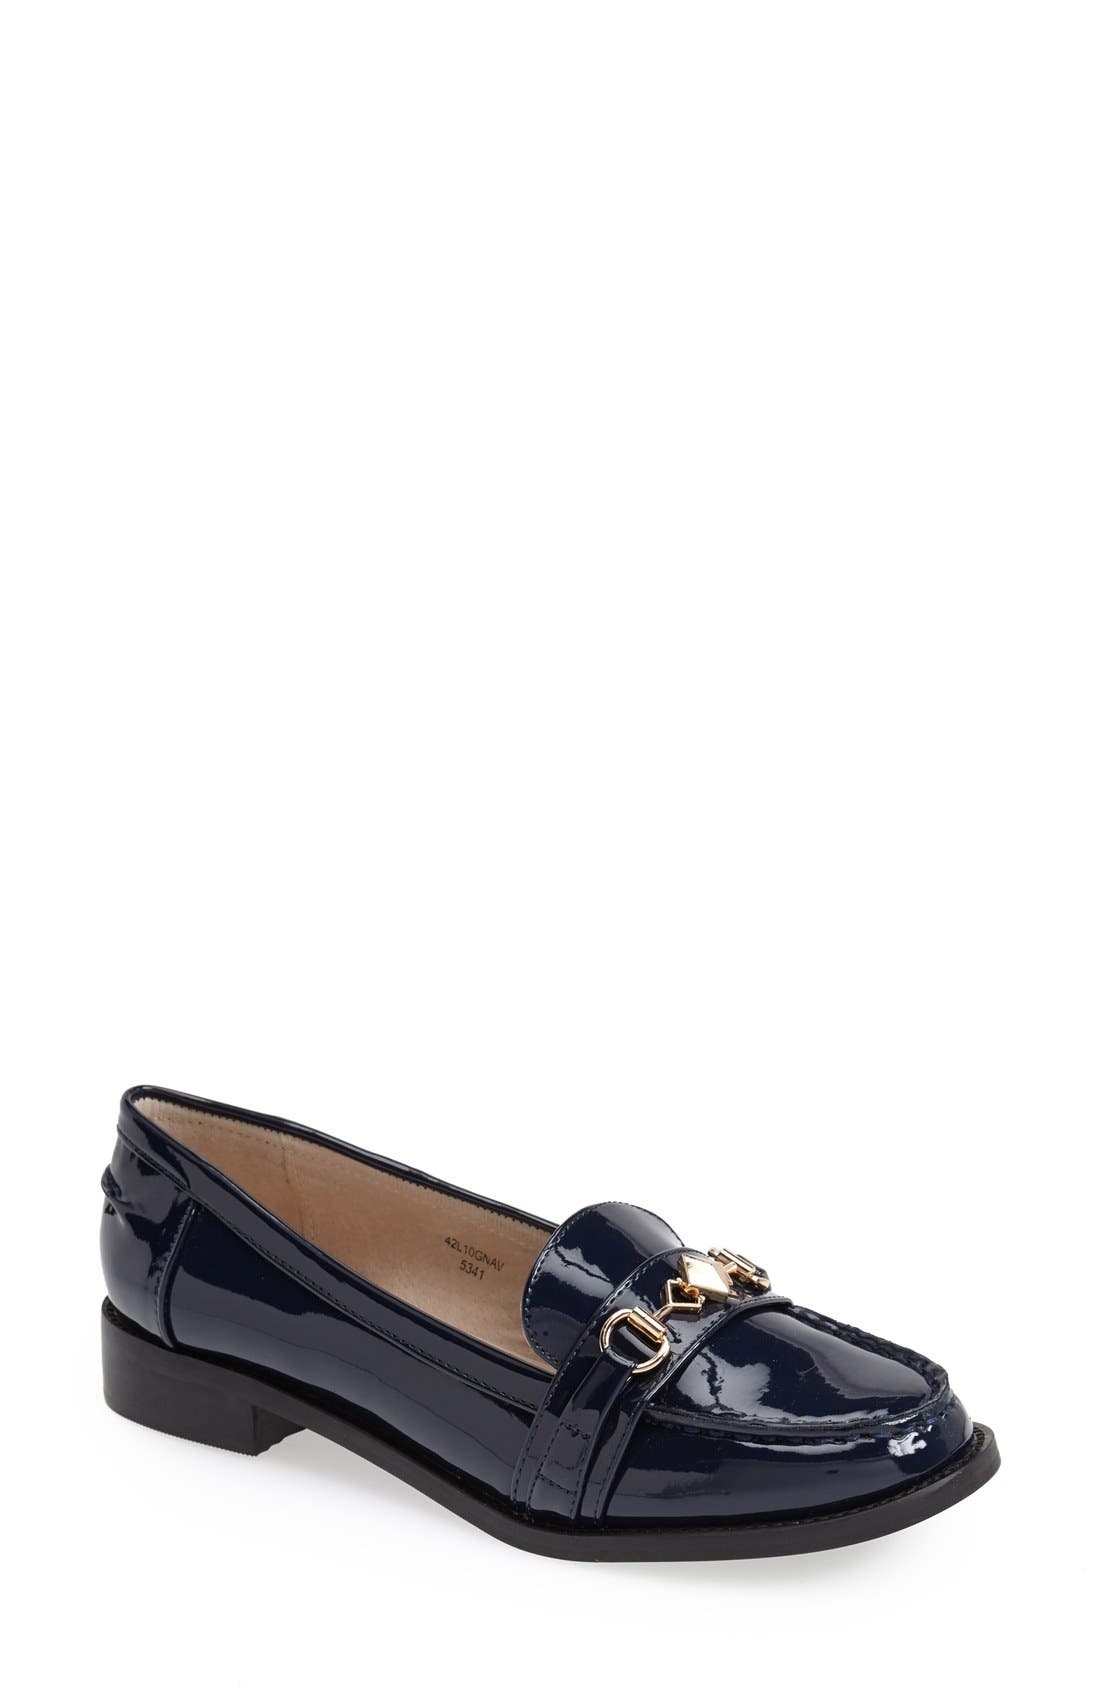 Main Image - Topshop 'Latch' Trim Loafer (Women)